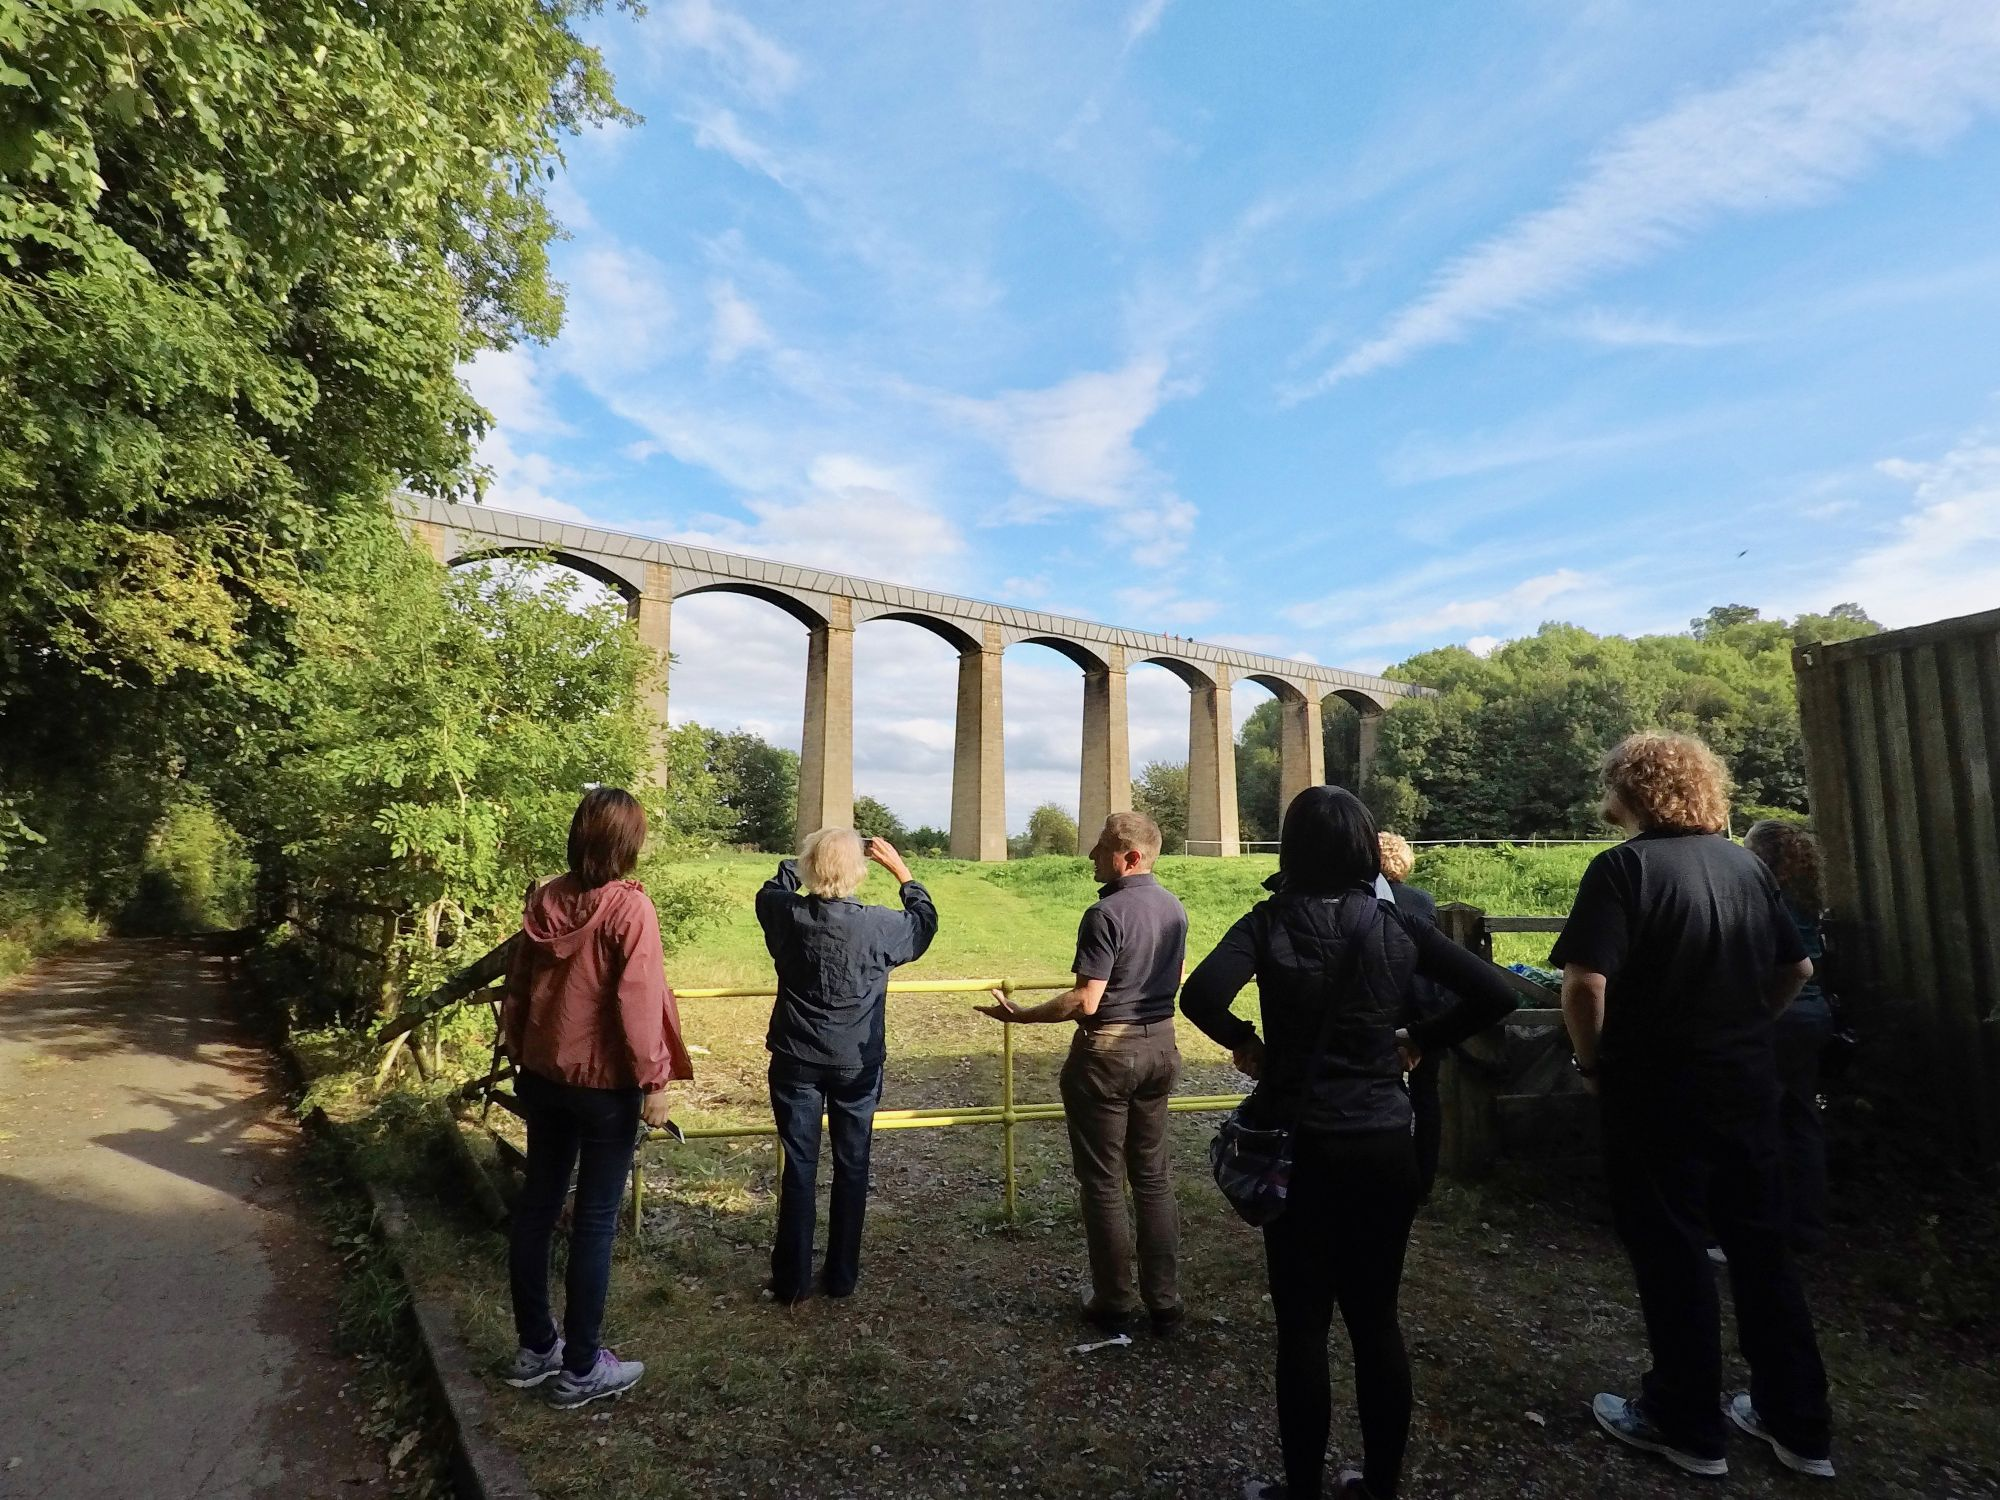 Stopping to see the Aquaduct